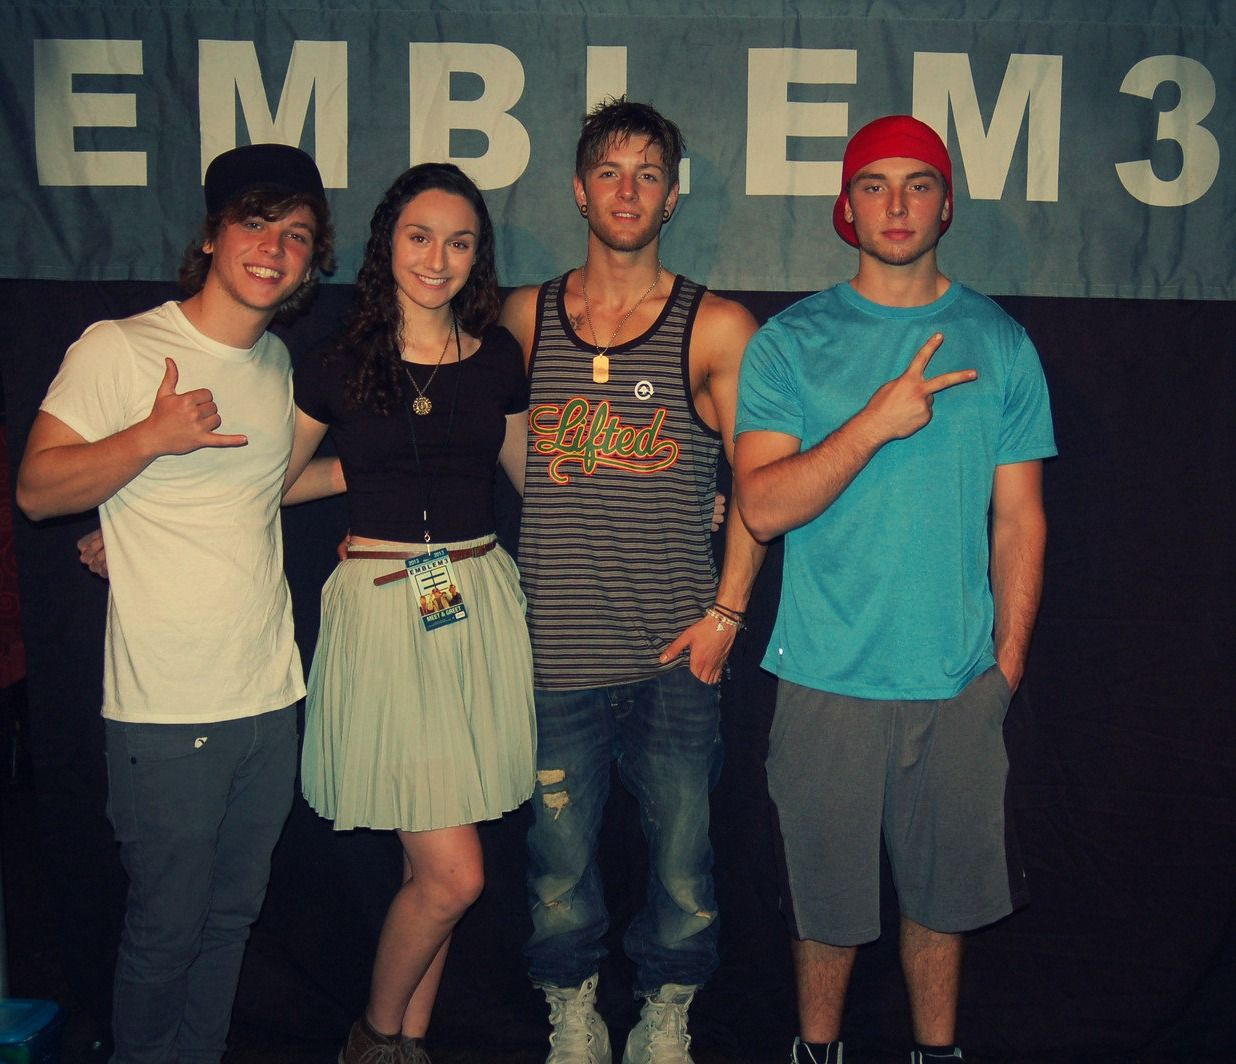 Asdfghjkl my meet and greet pic with the one and only emblem3 asdfghjkl my meet and greet pic with the one and only emblem3 m4hsunfo